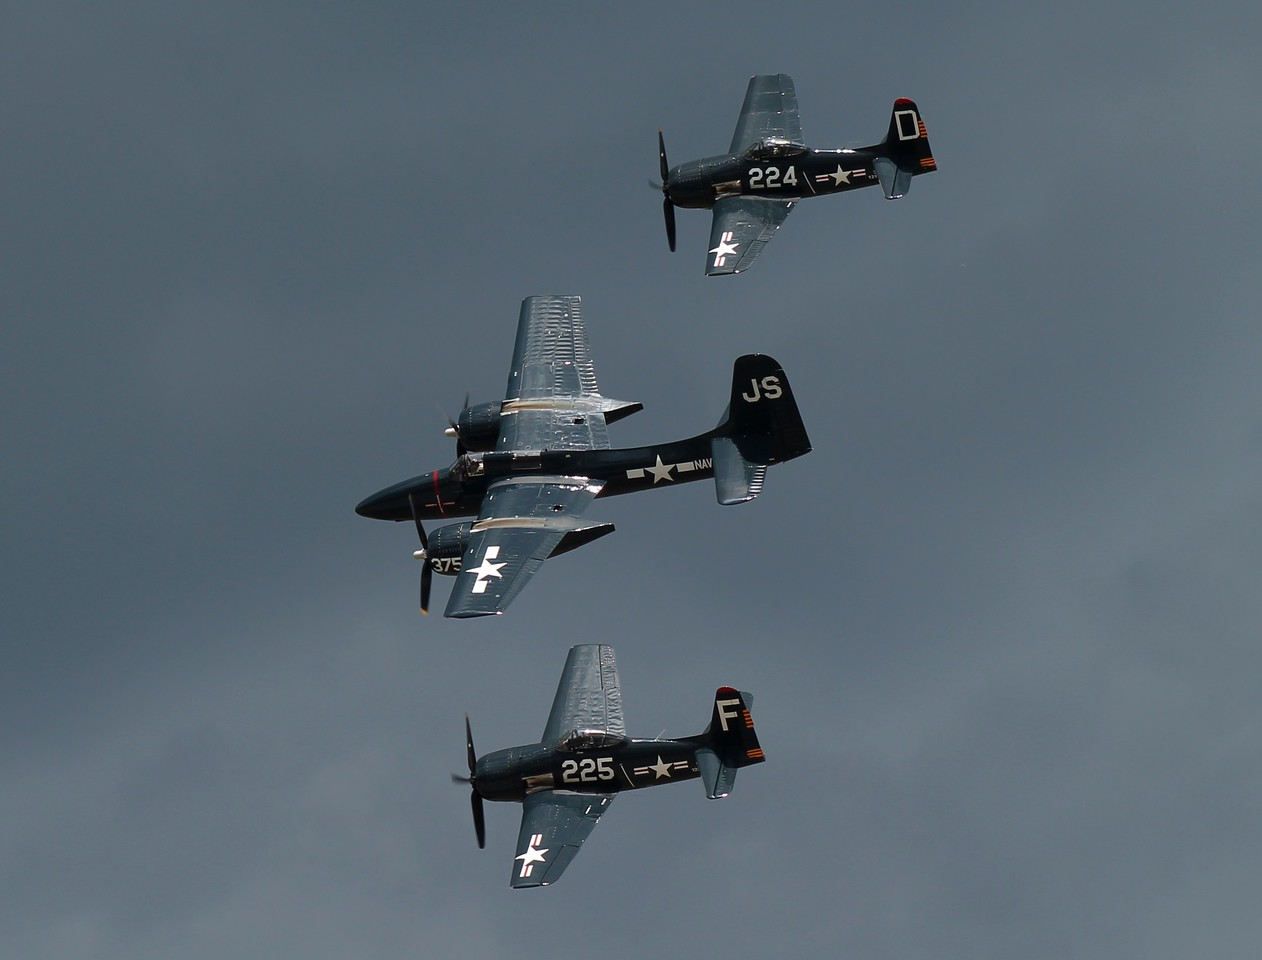 Two F8F Bearcats and an F7F Tigercat